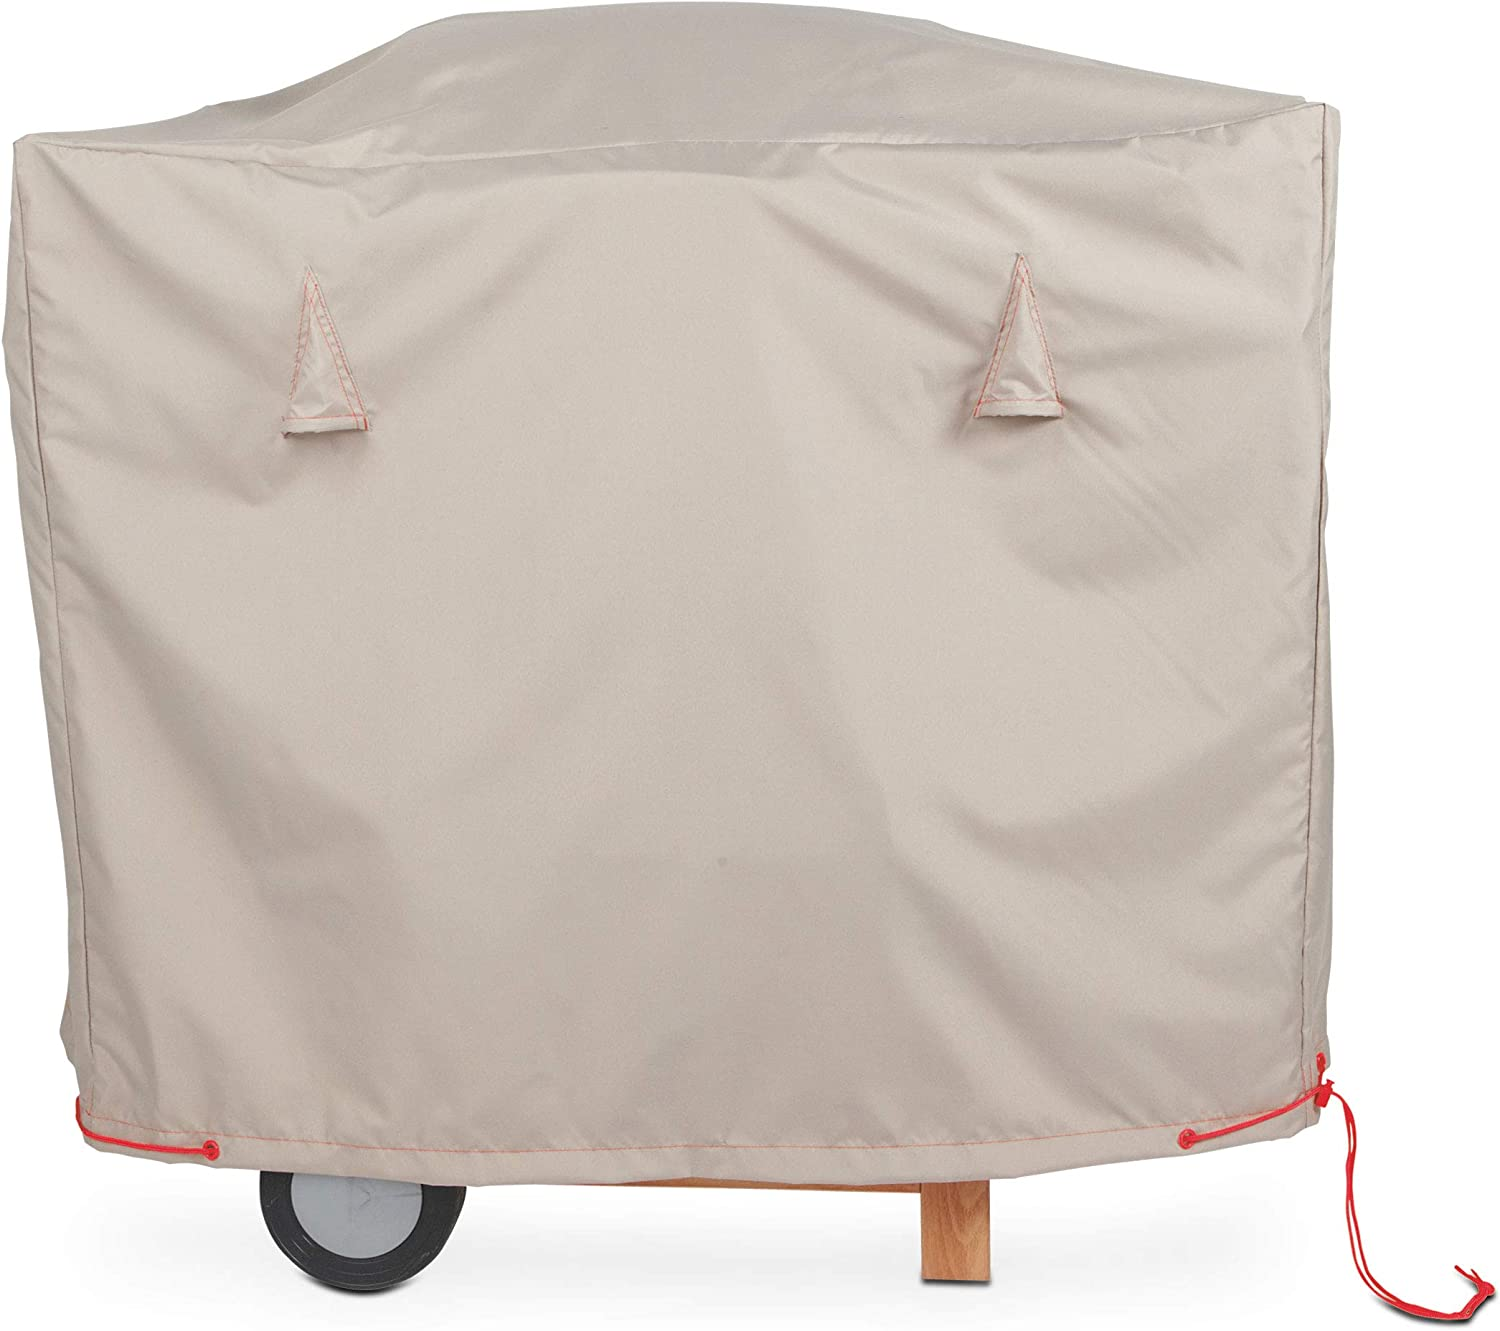 Taupe CovUp Housse de Protection pour Barbecue 102 x 46 x 92 cm